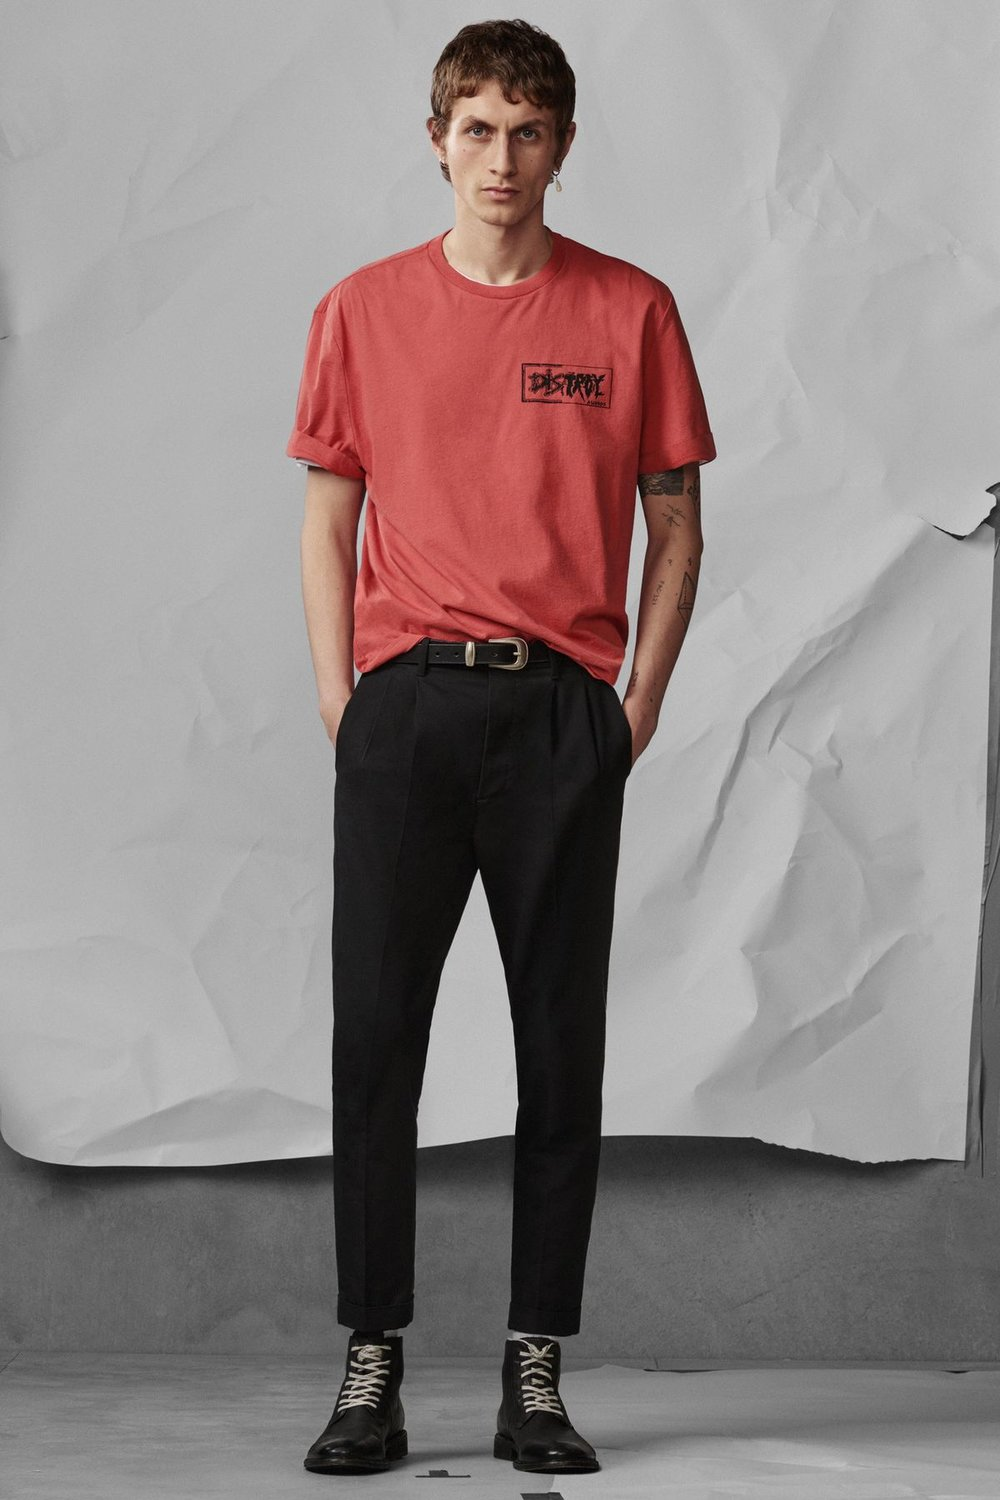 Distroy Crew T-Shirt , £45  Tallis Trouser , £108  Leven Boot , £168